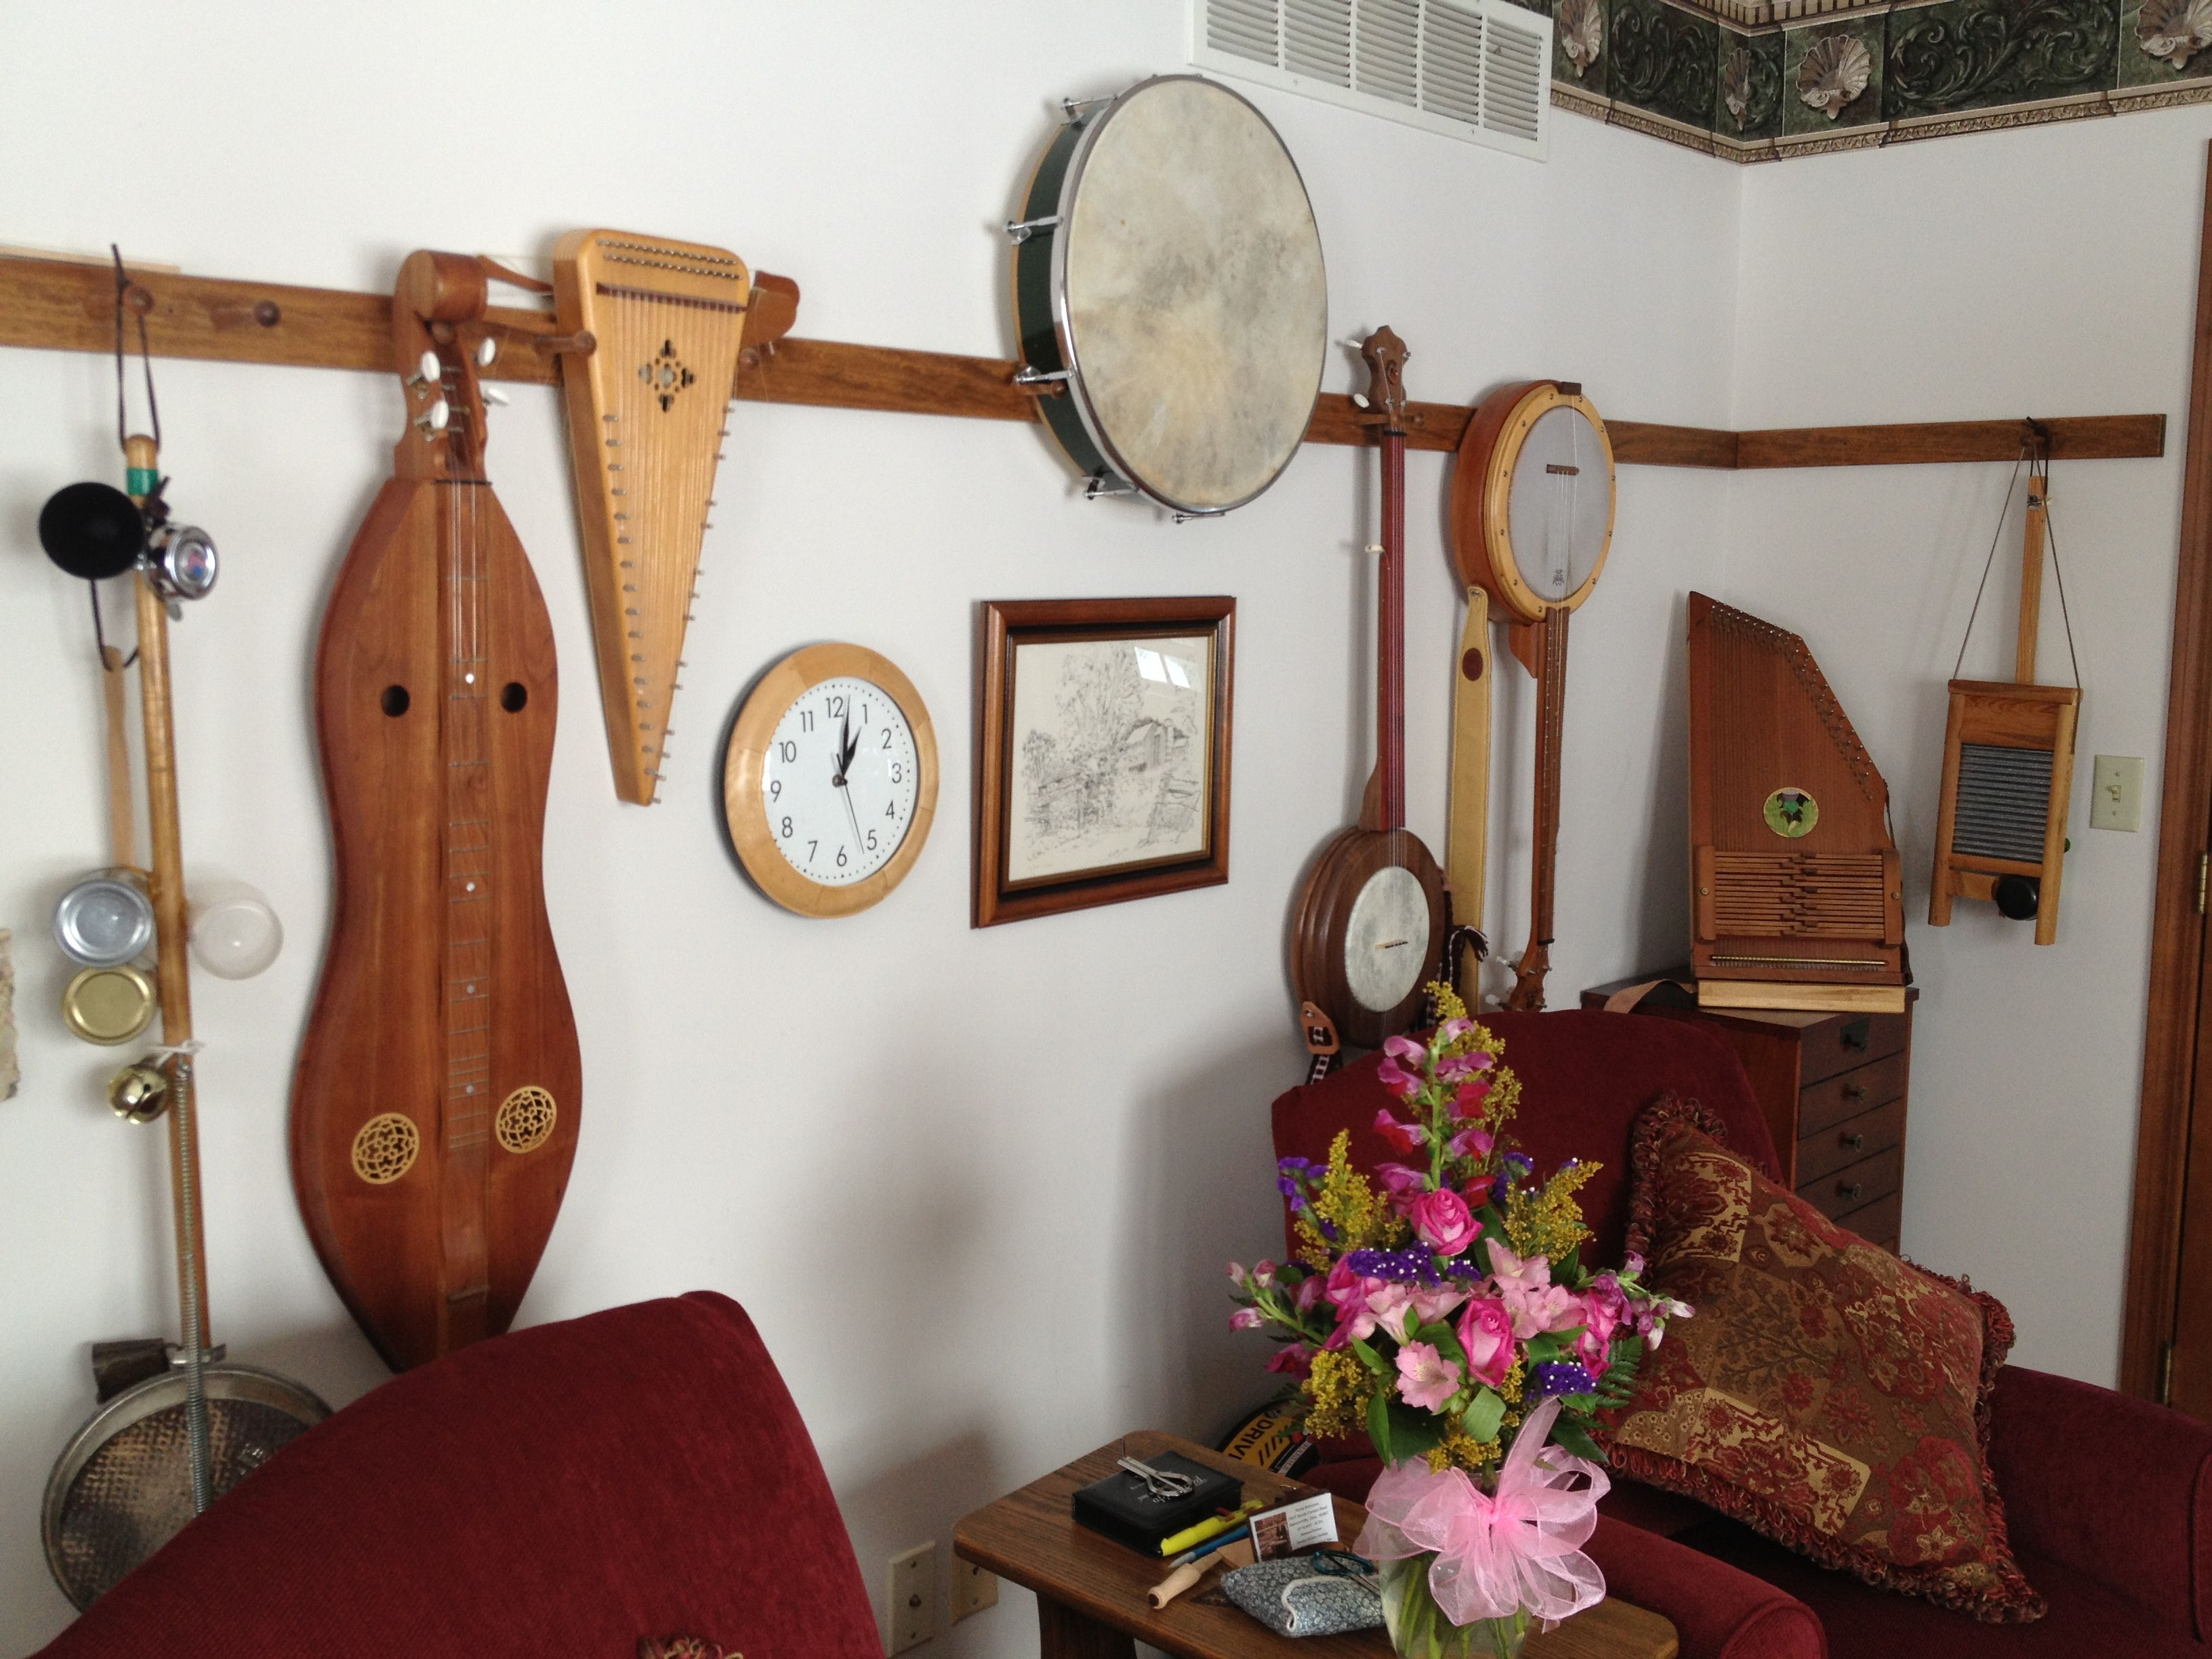 Display Of Musical Instruments Above Couch Decor Room